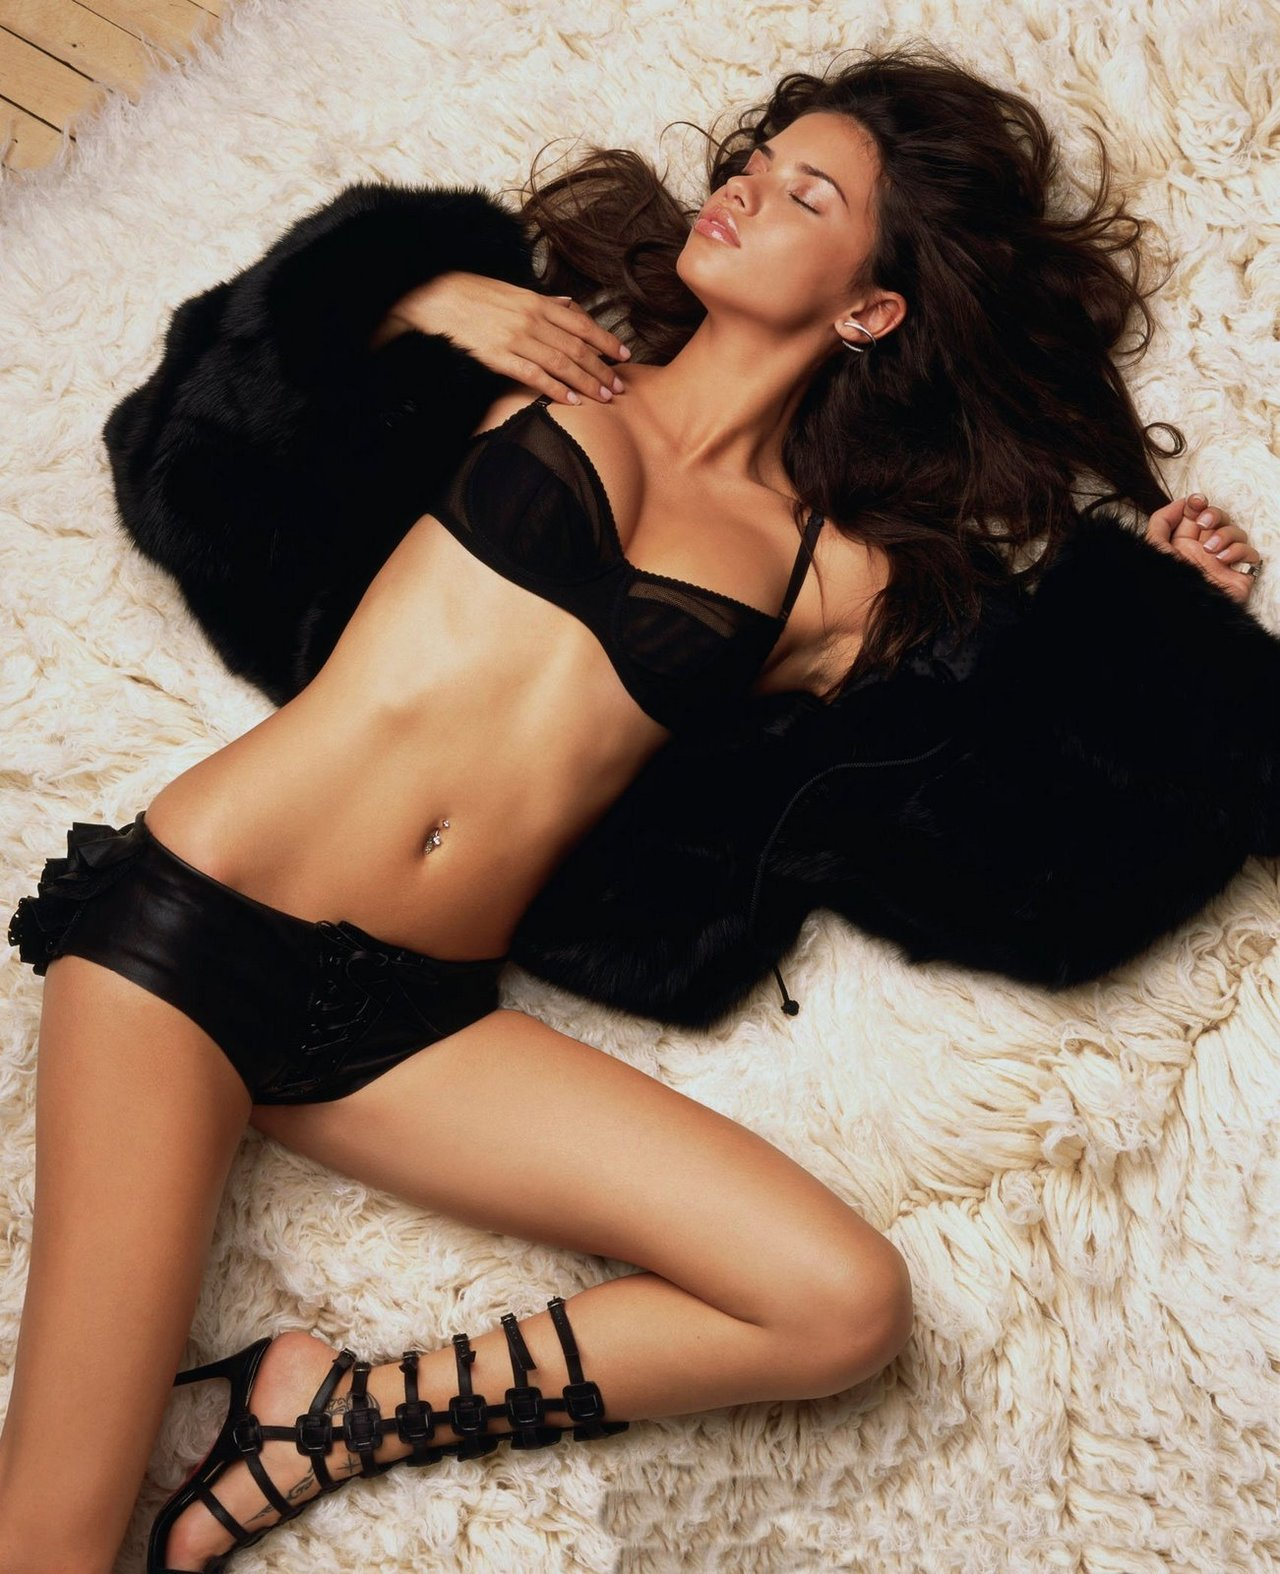 Adriana Lima: Brazilian Victoria's Secret Model